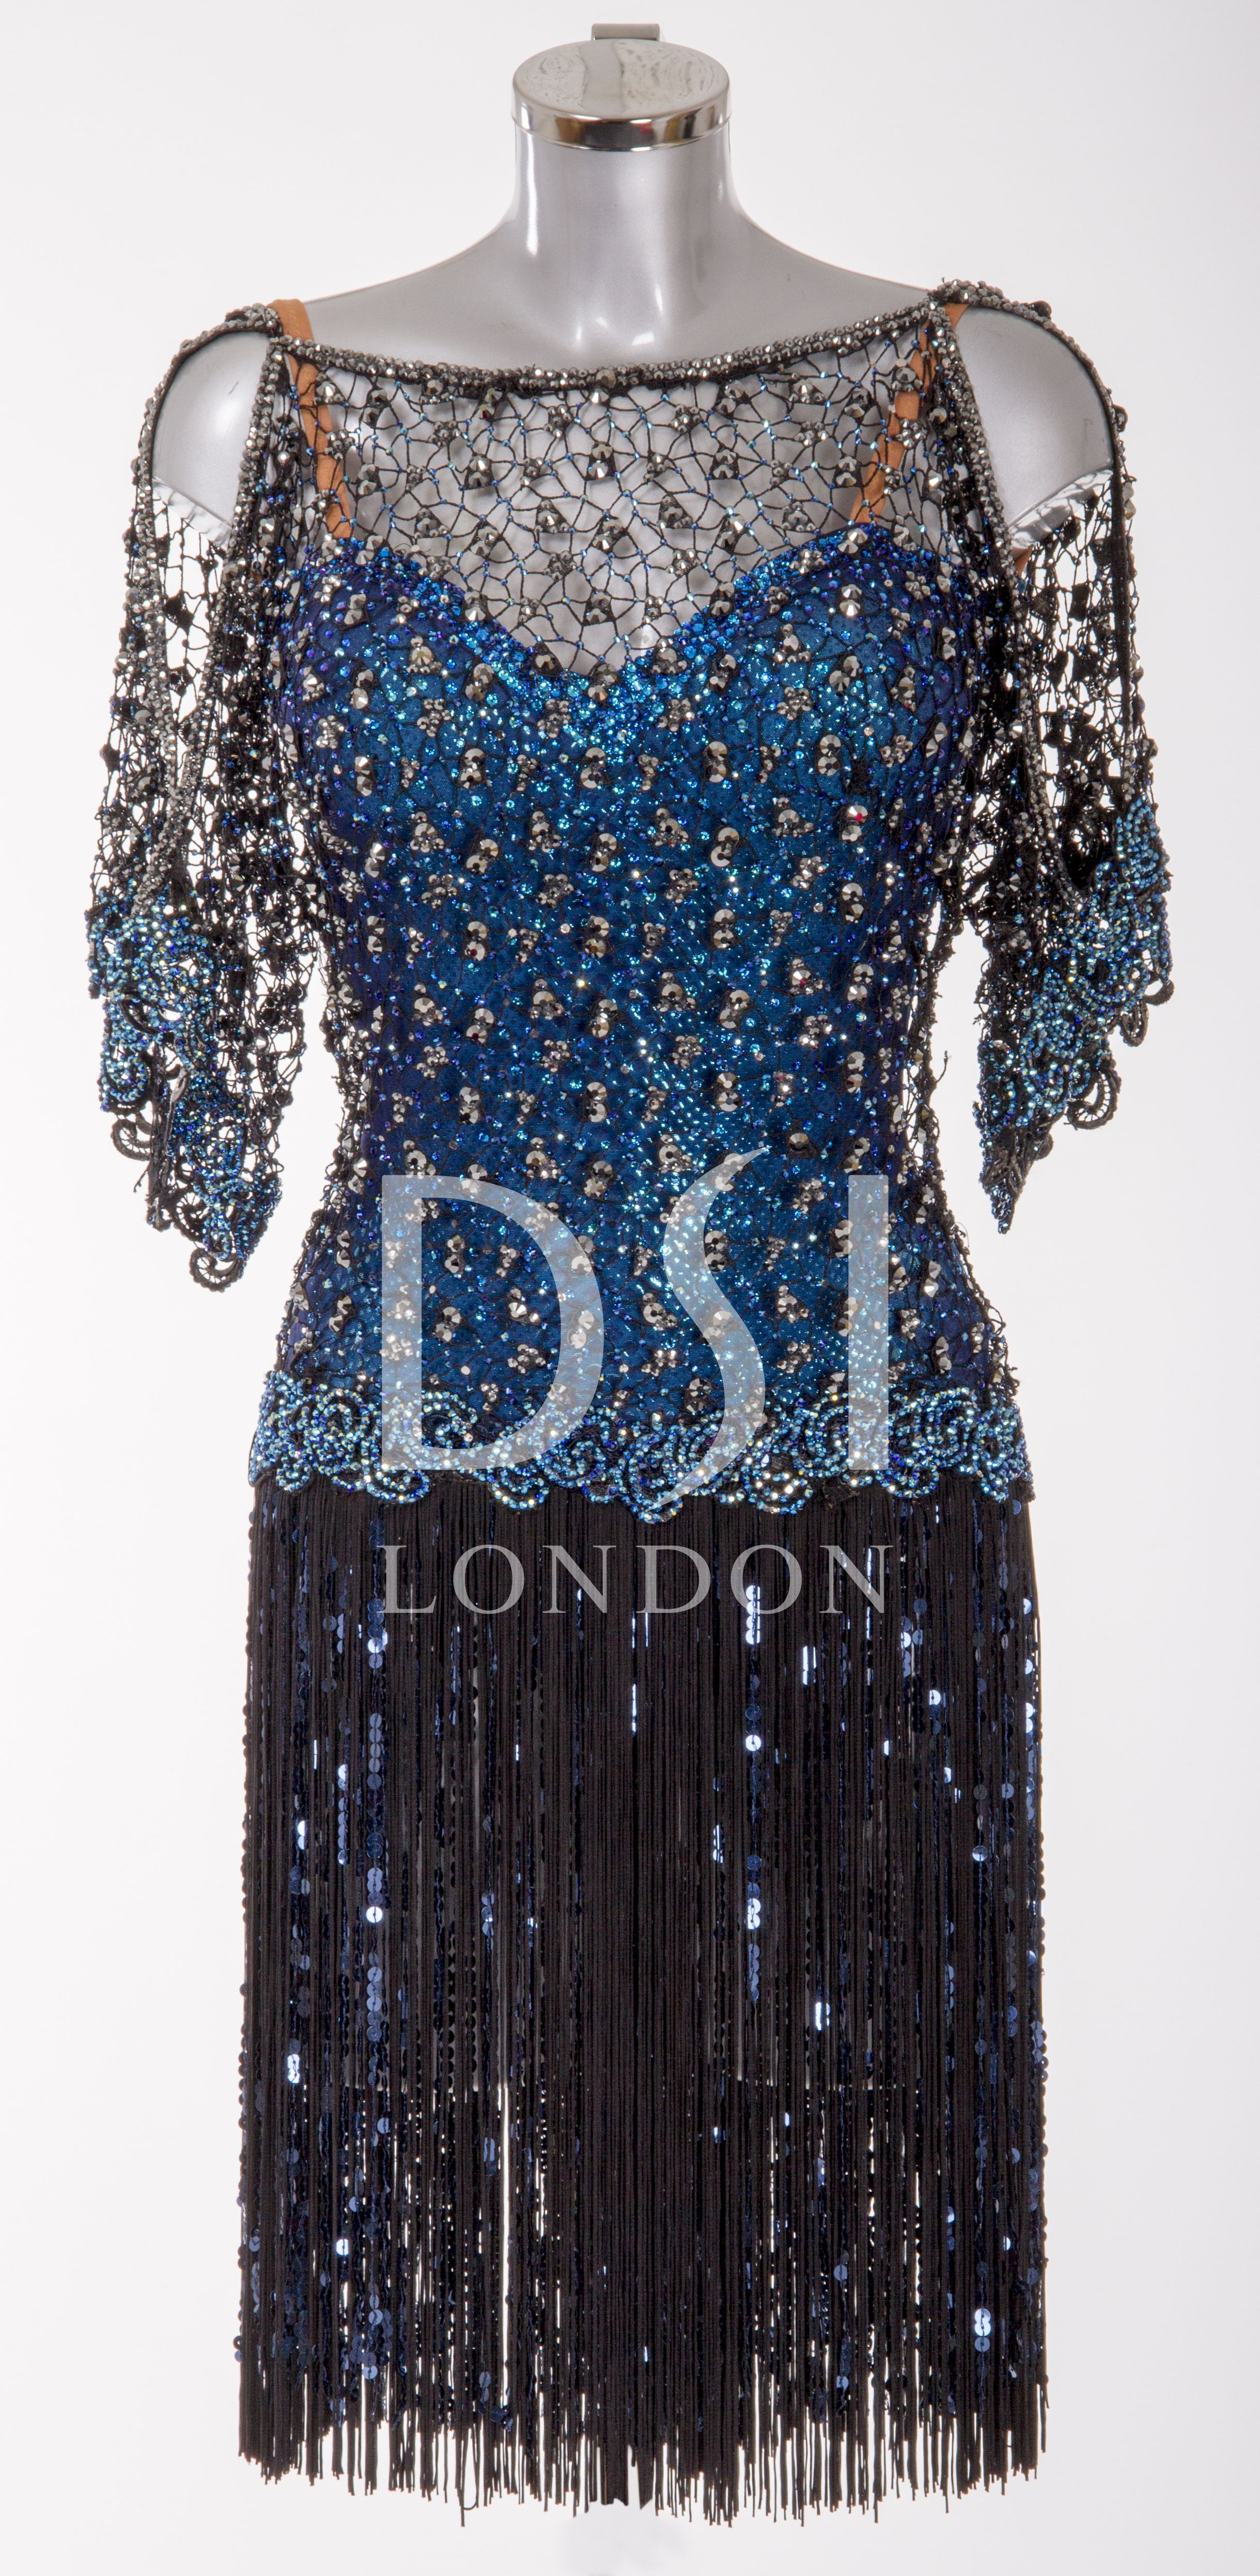 e28759753546 Black and Blue Latin Dress as worn by Natalie Lowe on Strictly Come Dancing  2014. Designed by Vicky Gill and produced by DSI London.